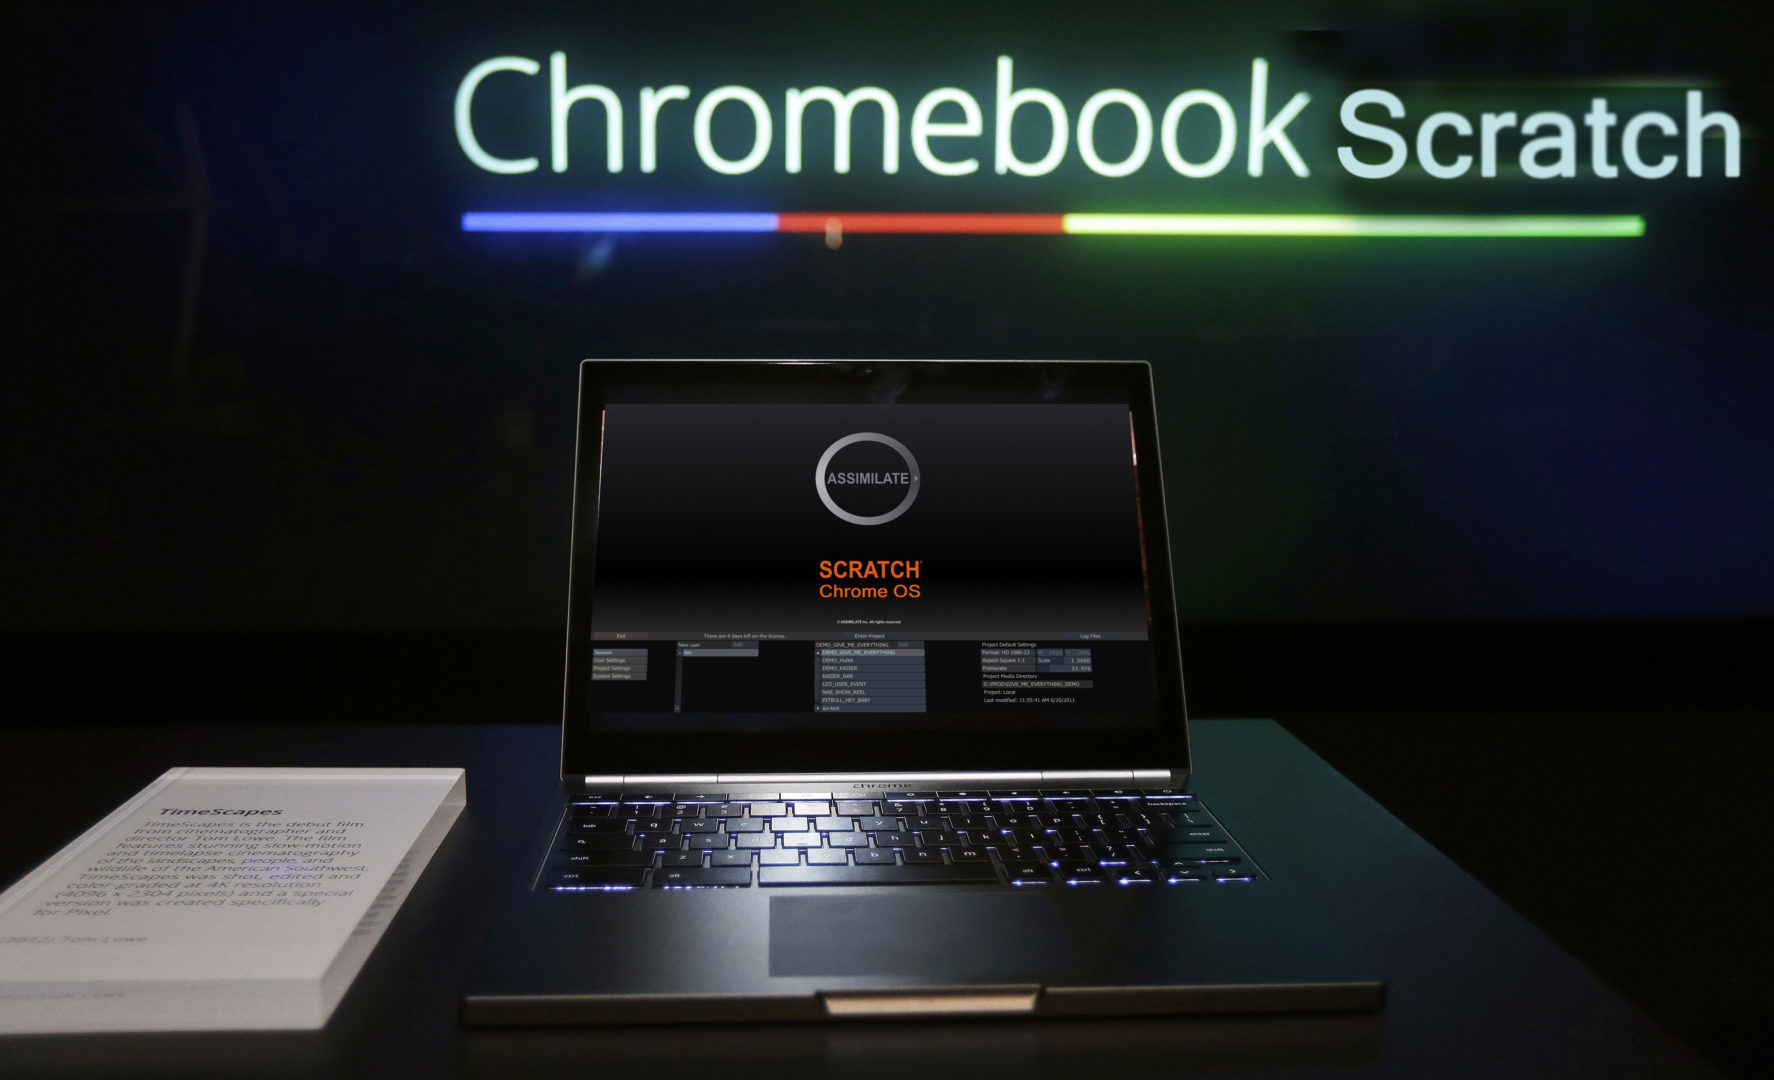 The Google Chromebook Pixel laptop computer is shown at an announcement in San Francisco, Thursday, Feb. 21, 2013. Google is adding a new touch to its line of Chrome laptops in an attempt to outshine personal computers running on software made by rivals Microsoft and Apple. (AP Photo/Jeff Chiu)